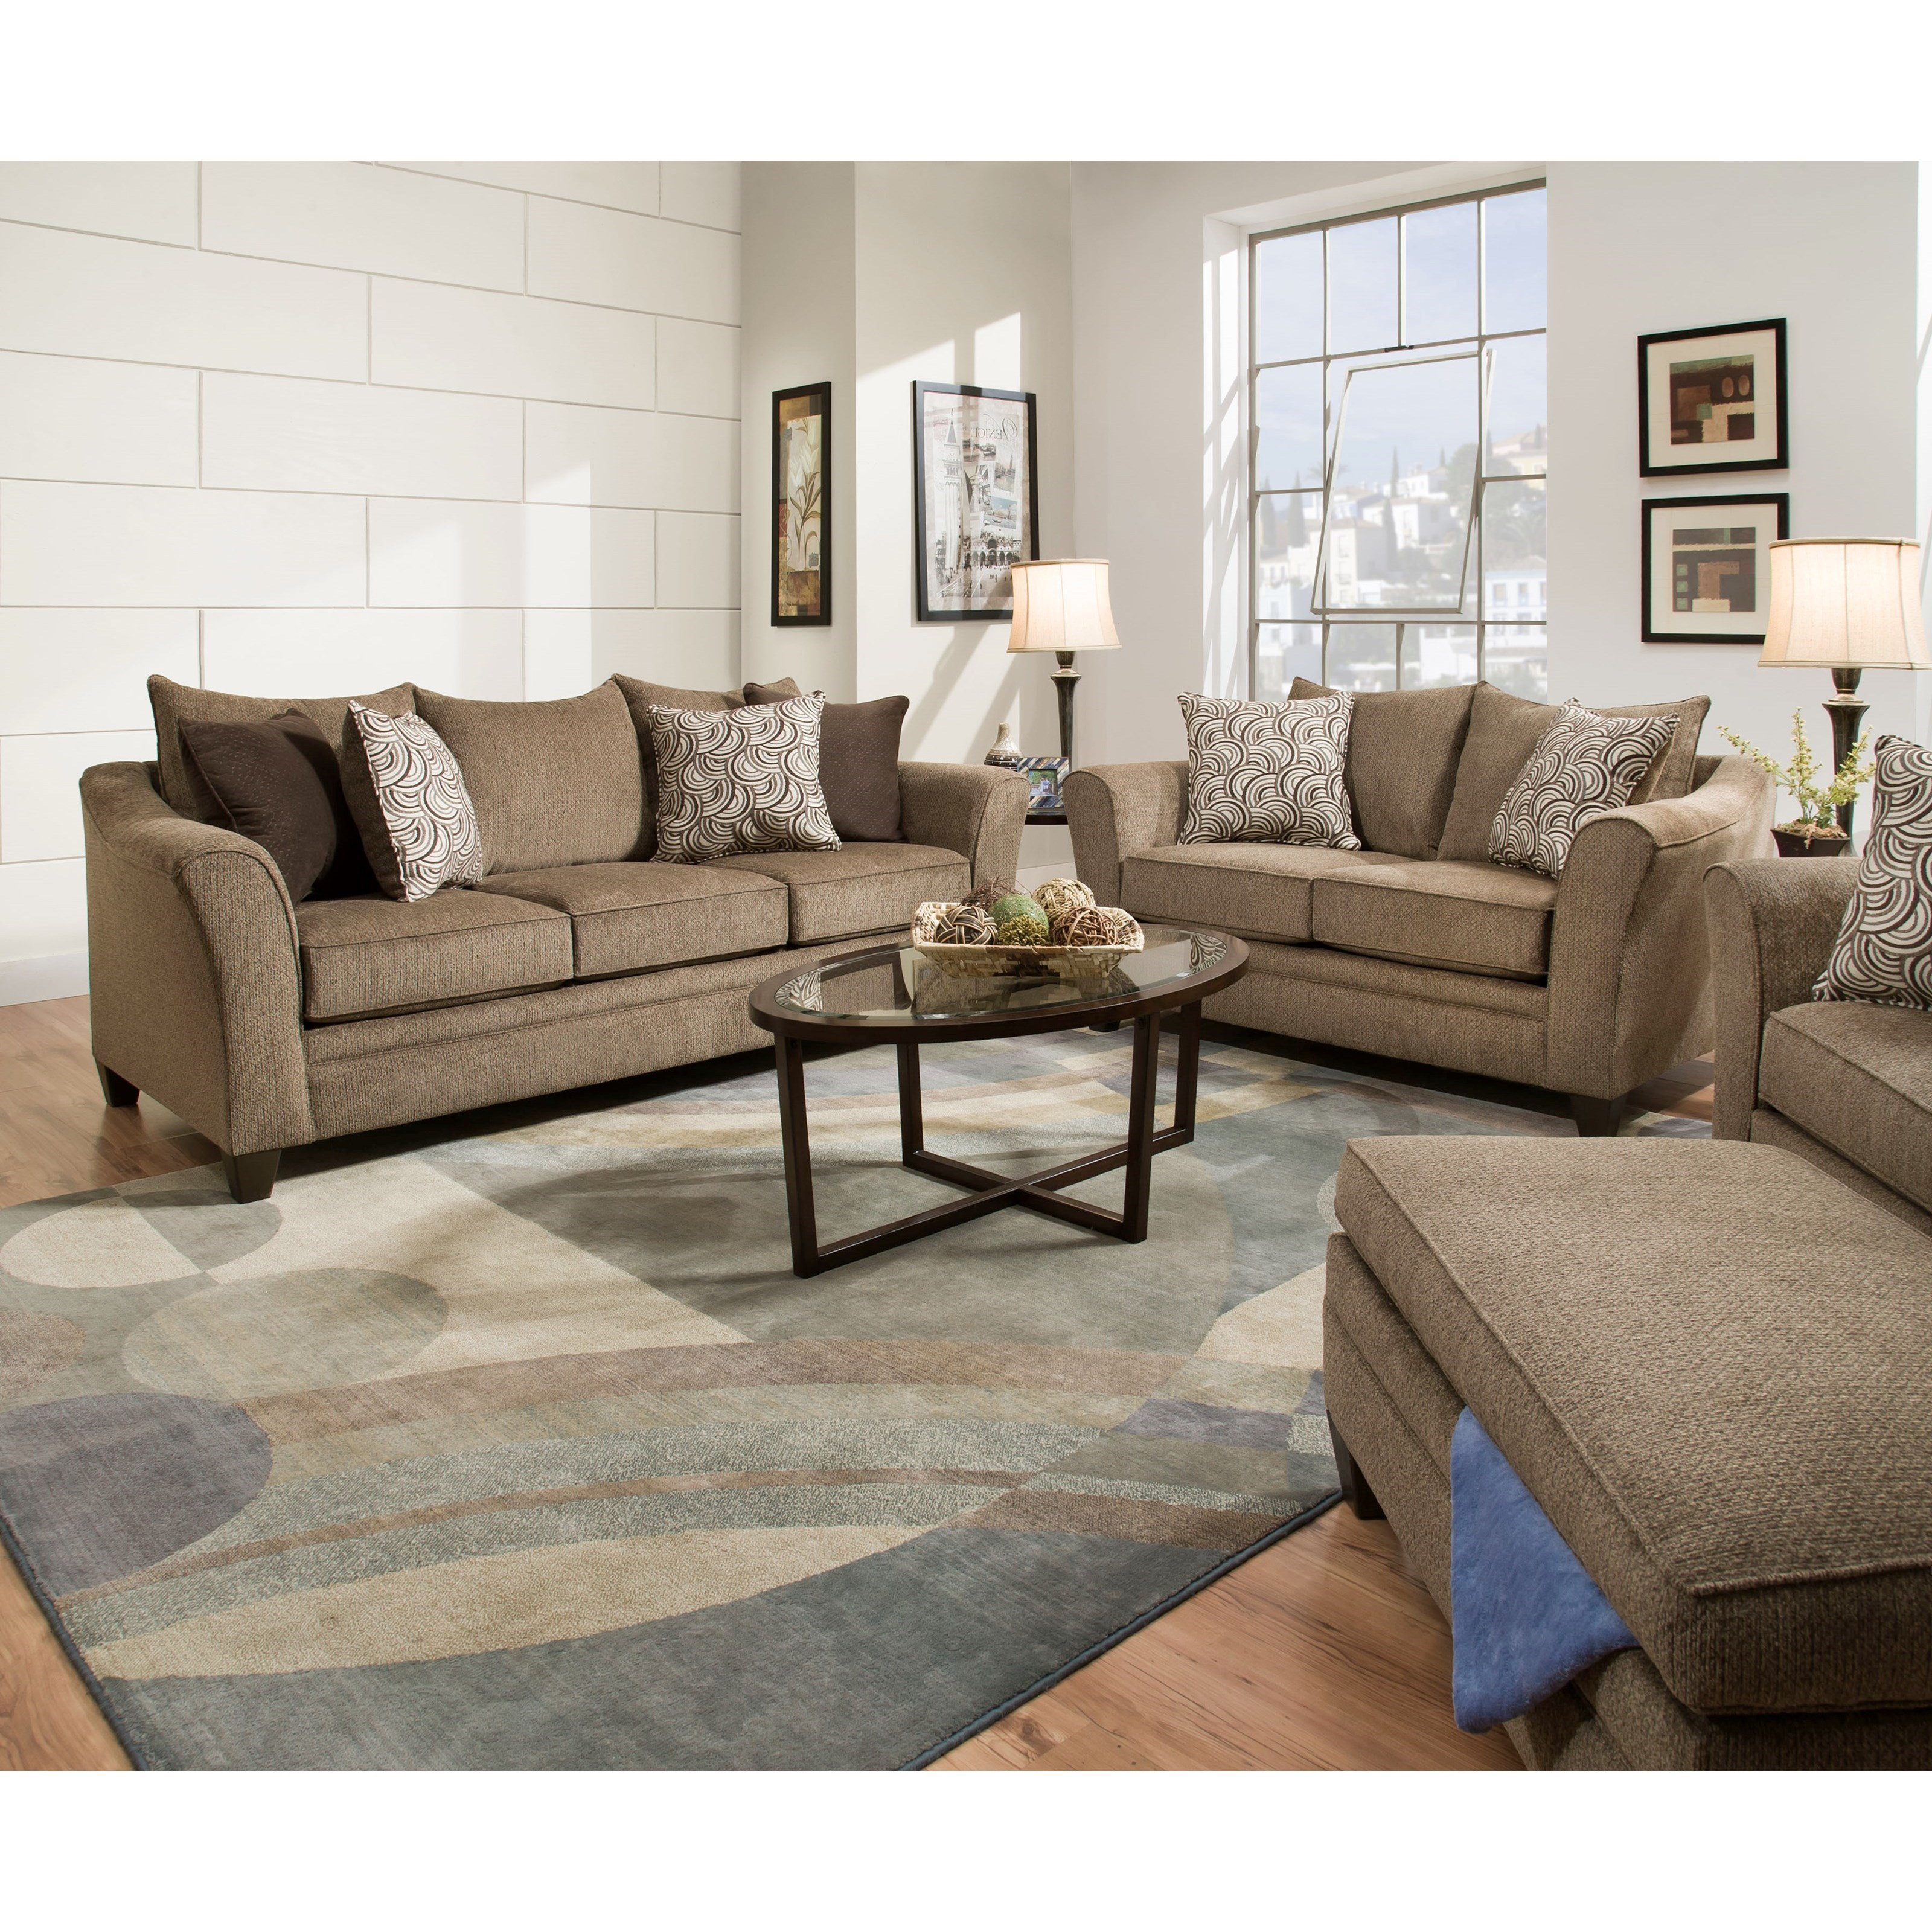 United Furniture Industries 6485 6485LivingRoomGroup4